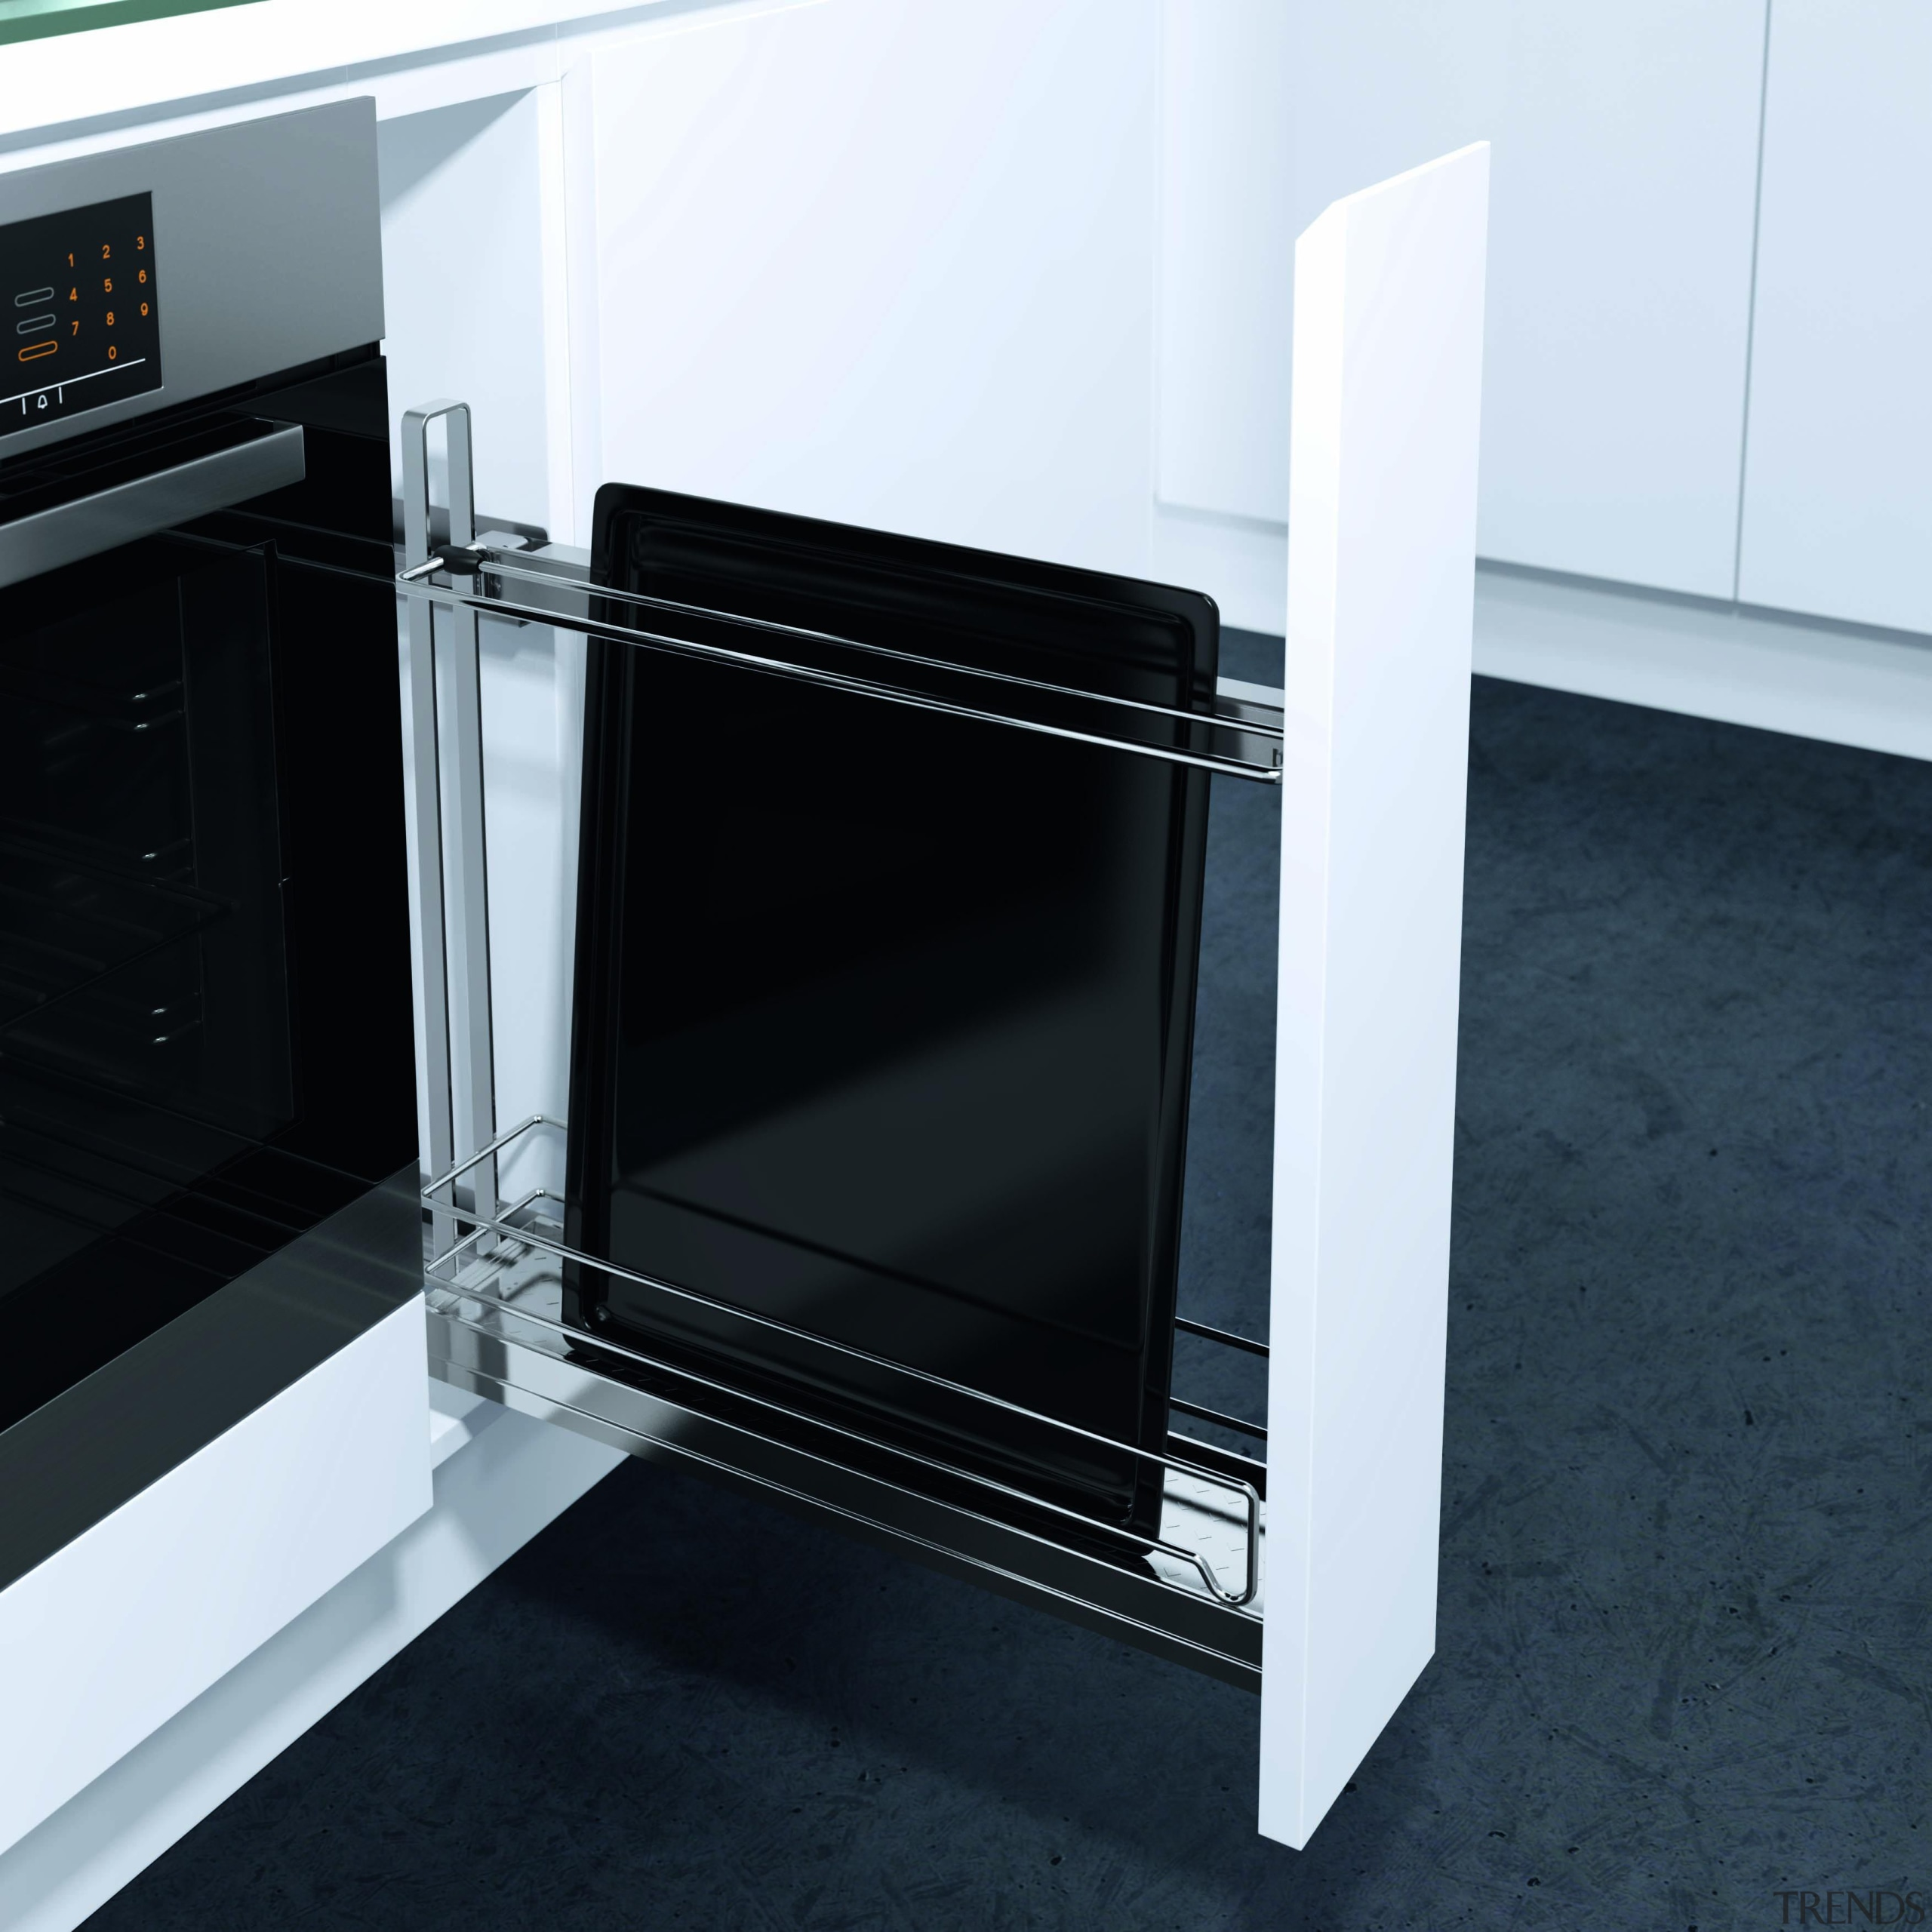 Suiting a cabinet width of just 150mm, Vauth furniture, home appliance, product, product design, table, black, white